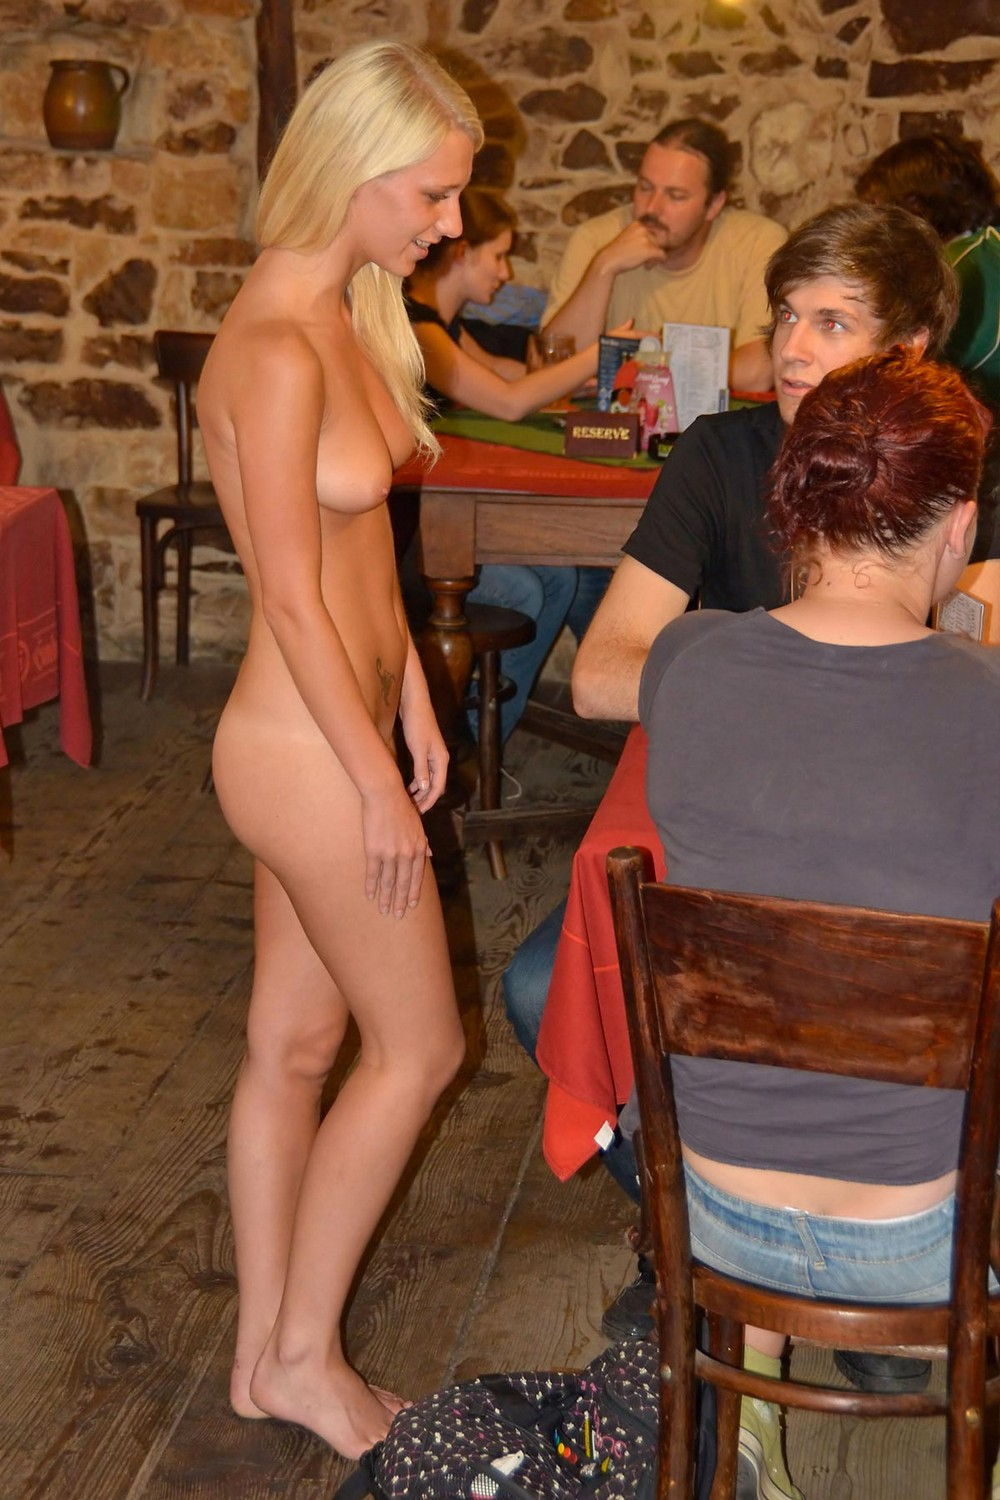 naked-girls-in-public-mix-vol5-71